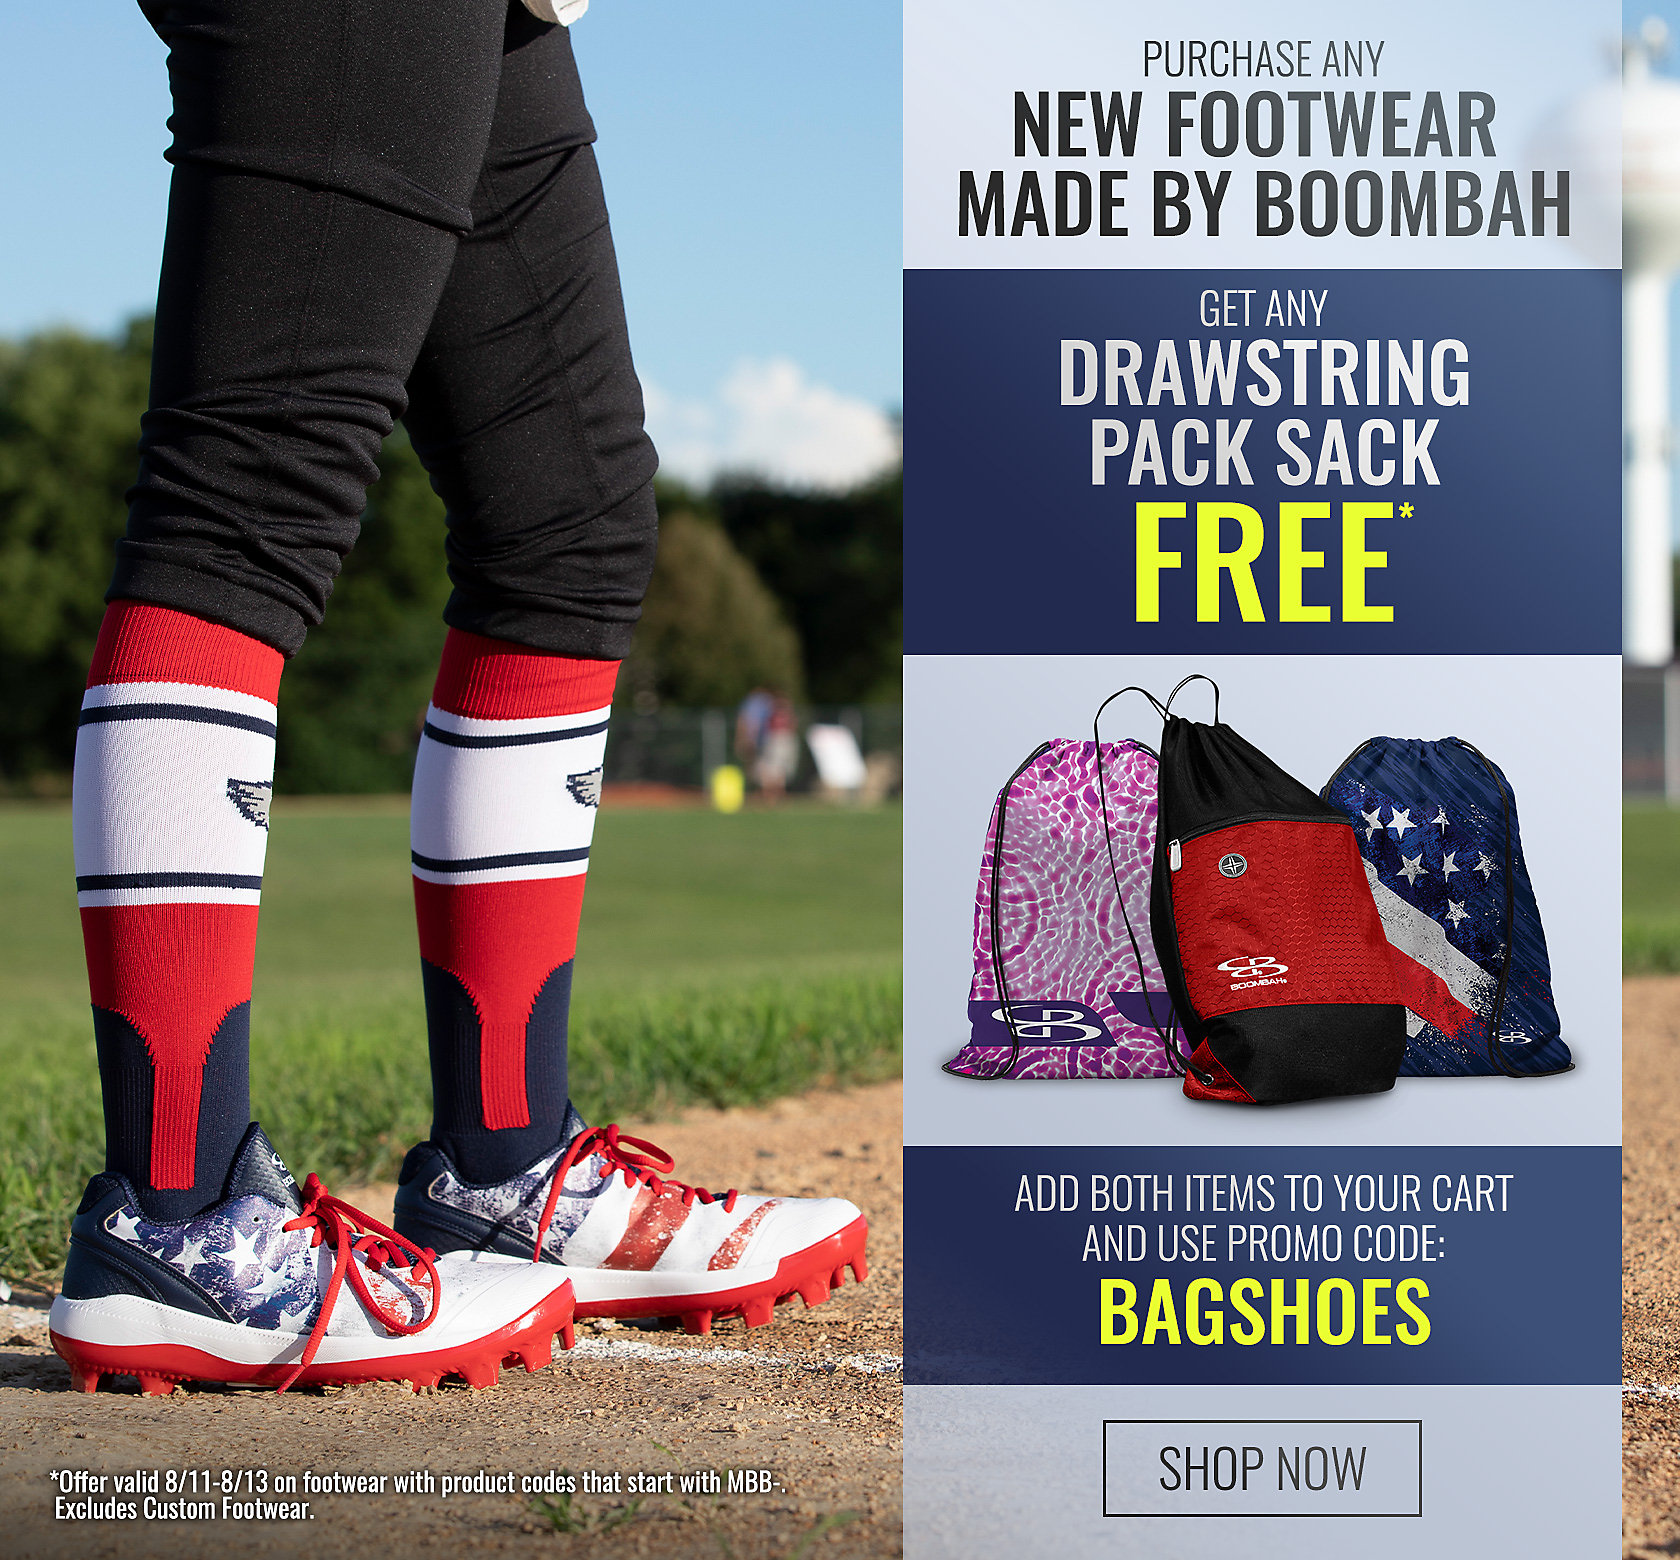 Purchase New Footwear Made by Boombah, Get Drawstring Pack Sack for Free